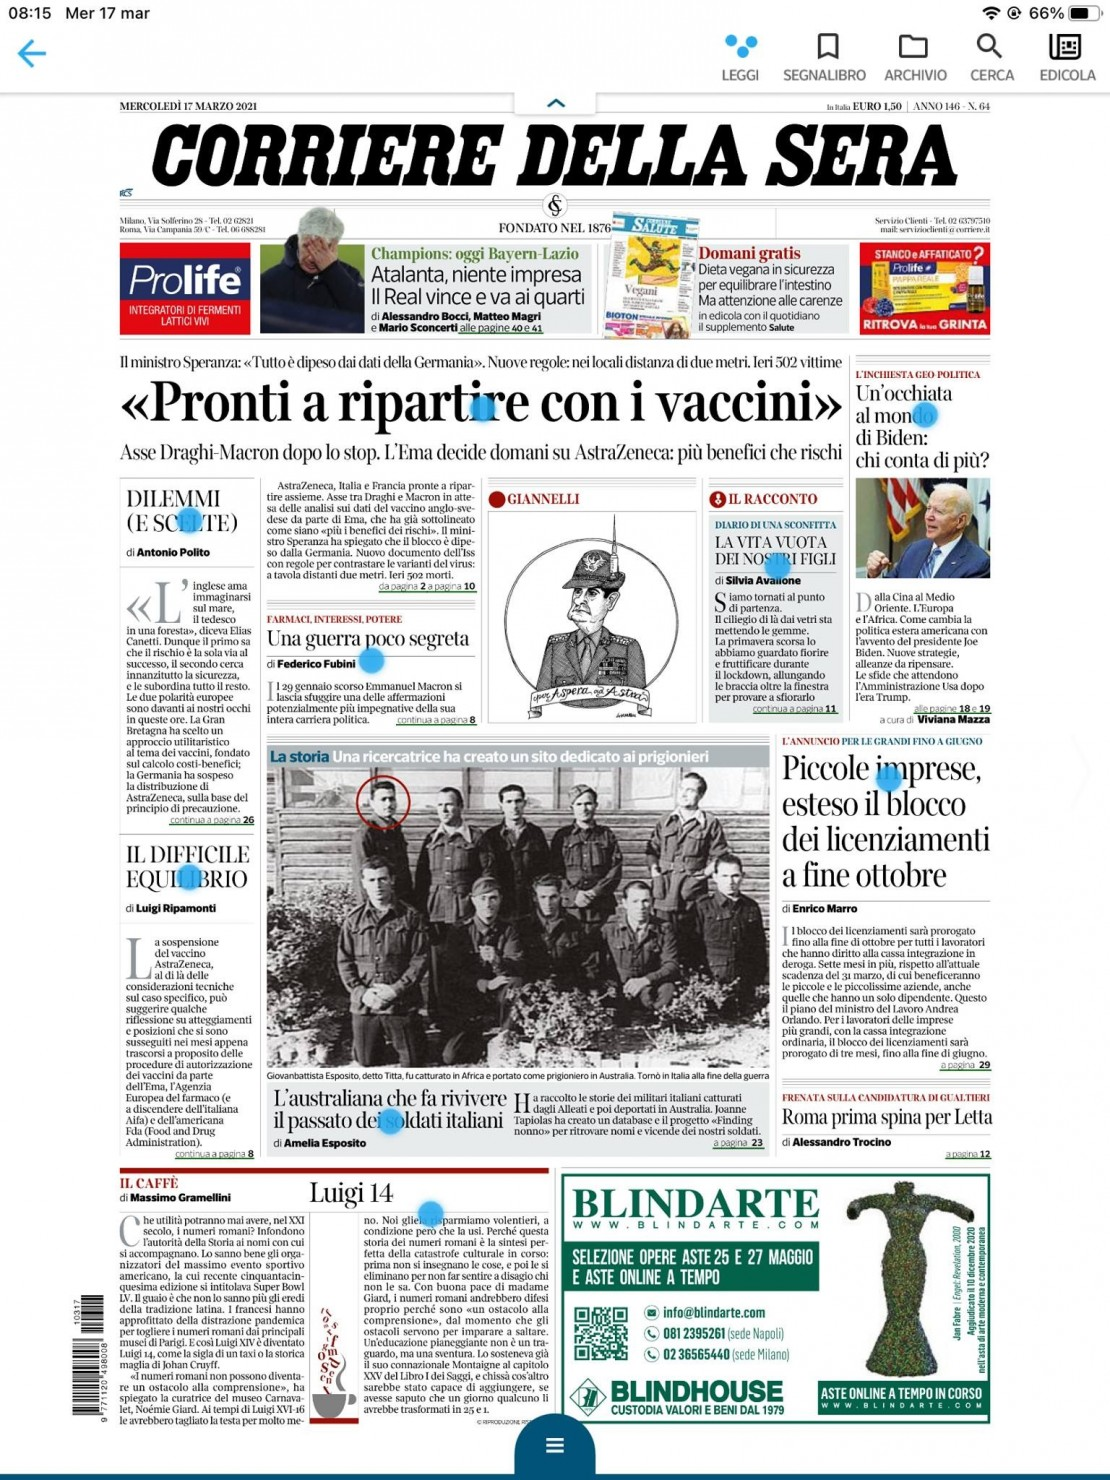 Italian newspaper article revealing the story of Joanne Tapiolas the Australian who finds Italian soldiers imprisoned in Australia article by Amelia Esposito journalist Source Corriere della Sera 17 March 2021